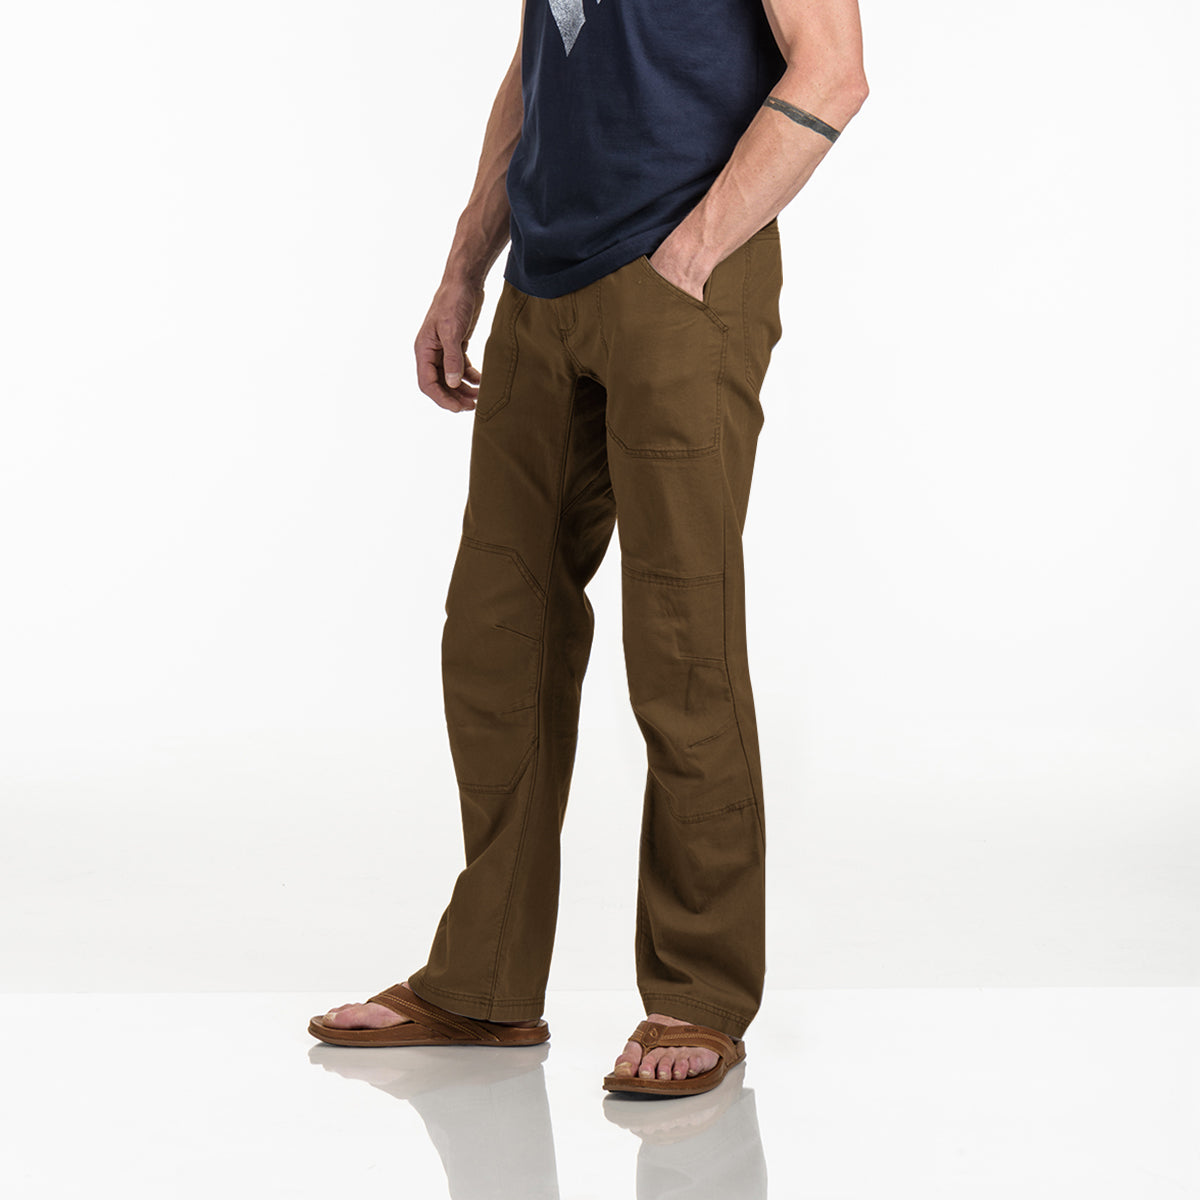 Black Diamond Chino Cotton Pant For Men-BE8849